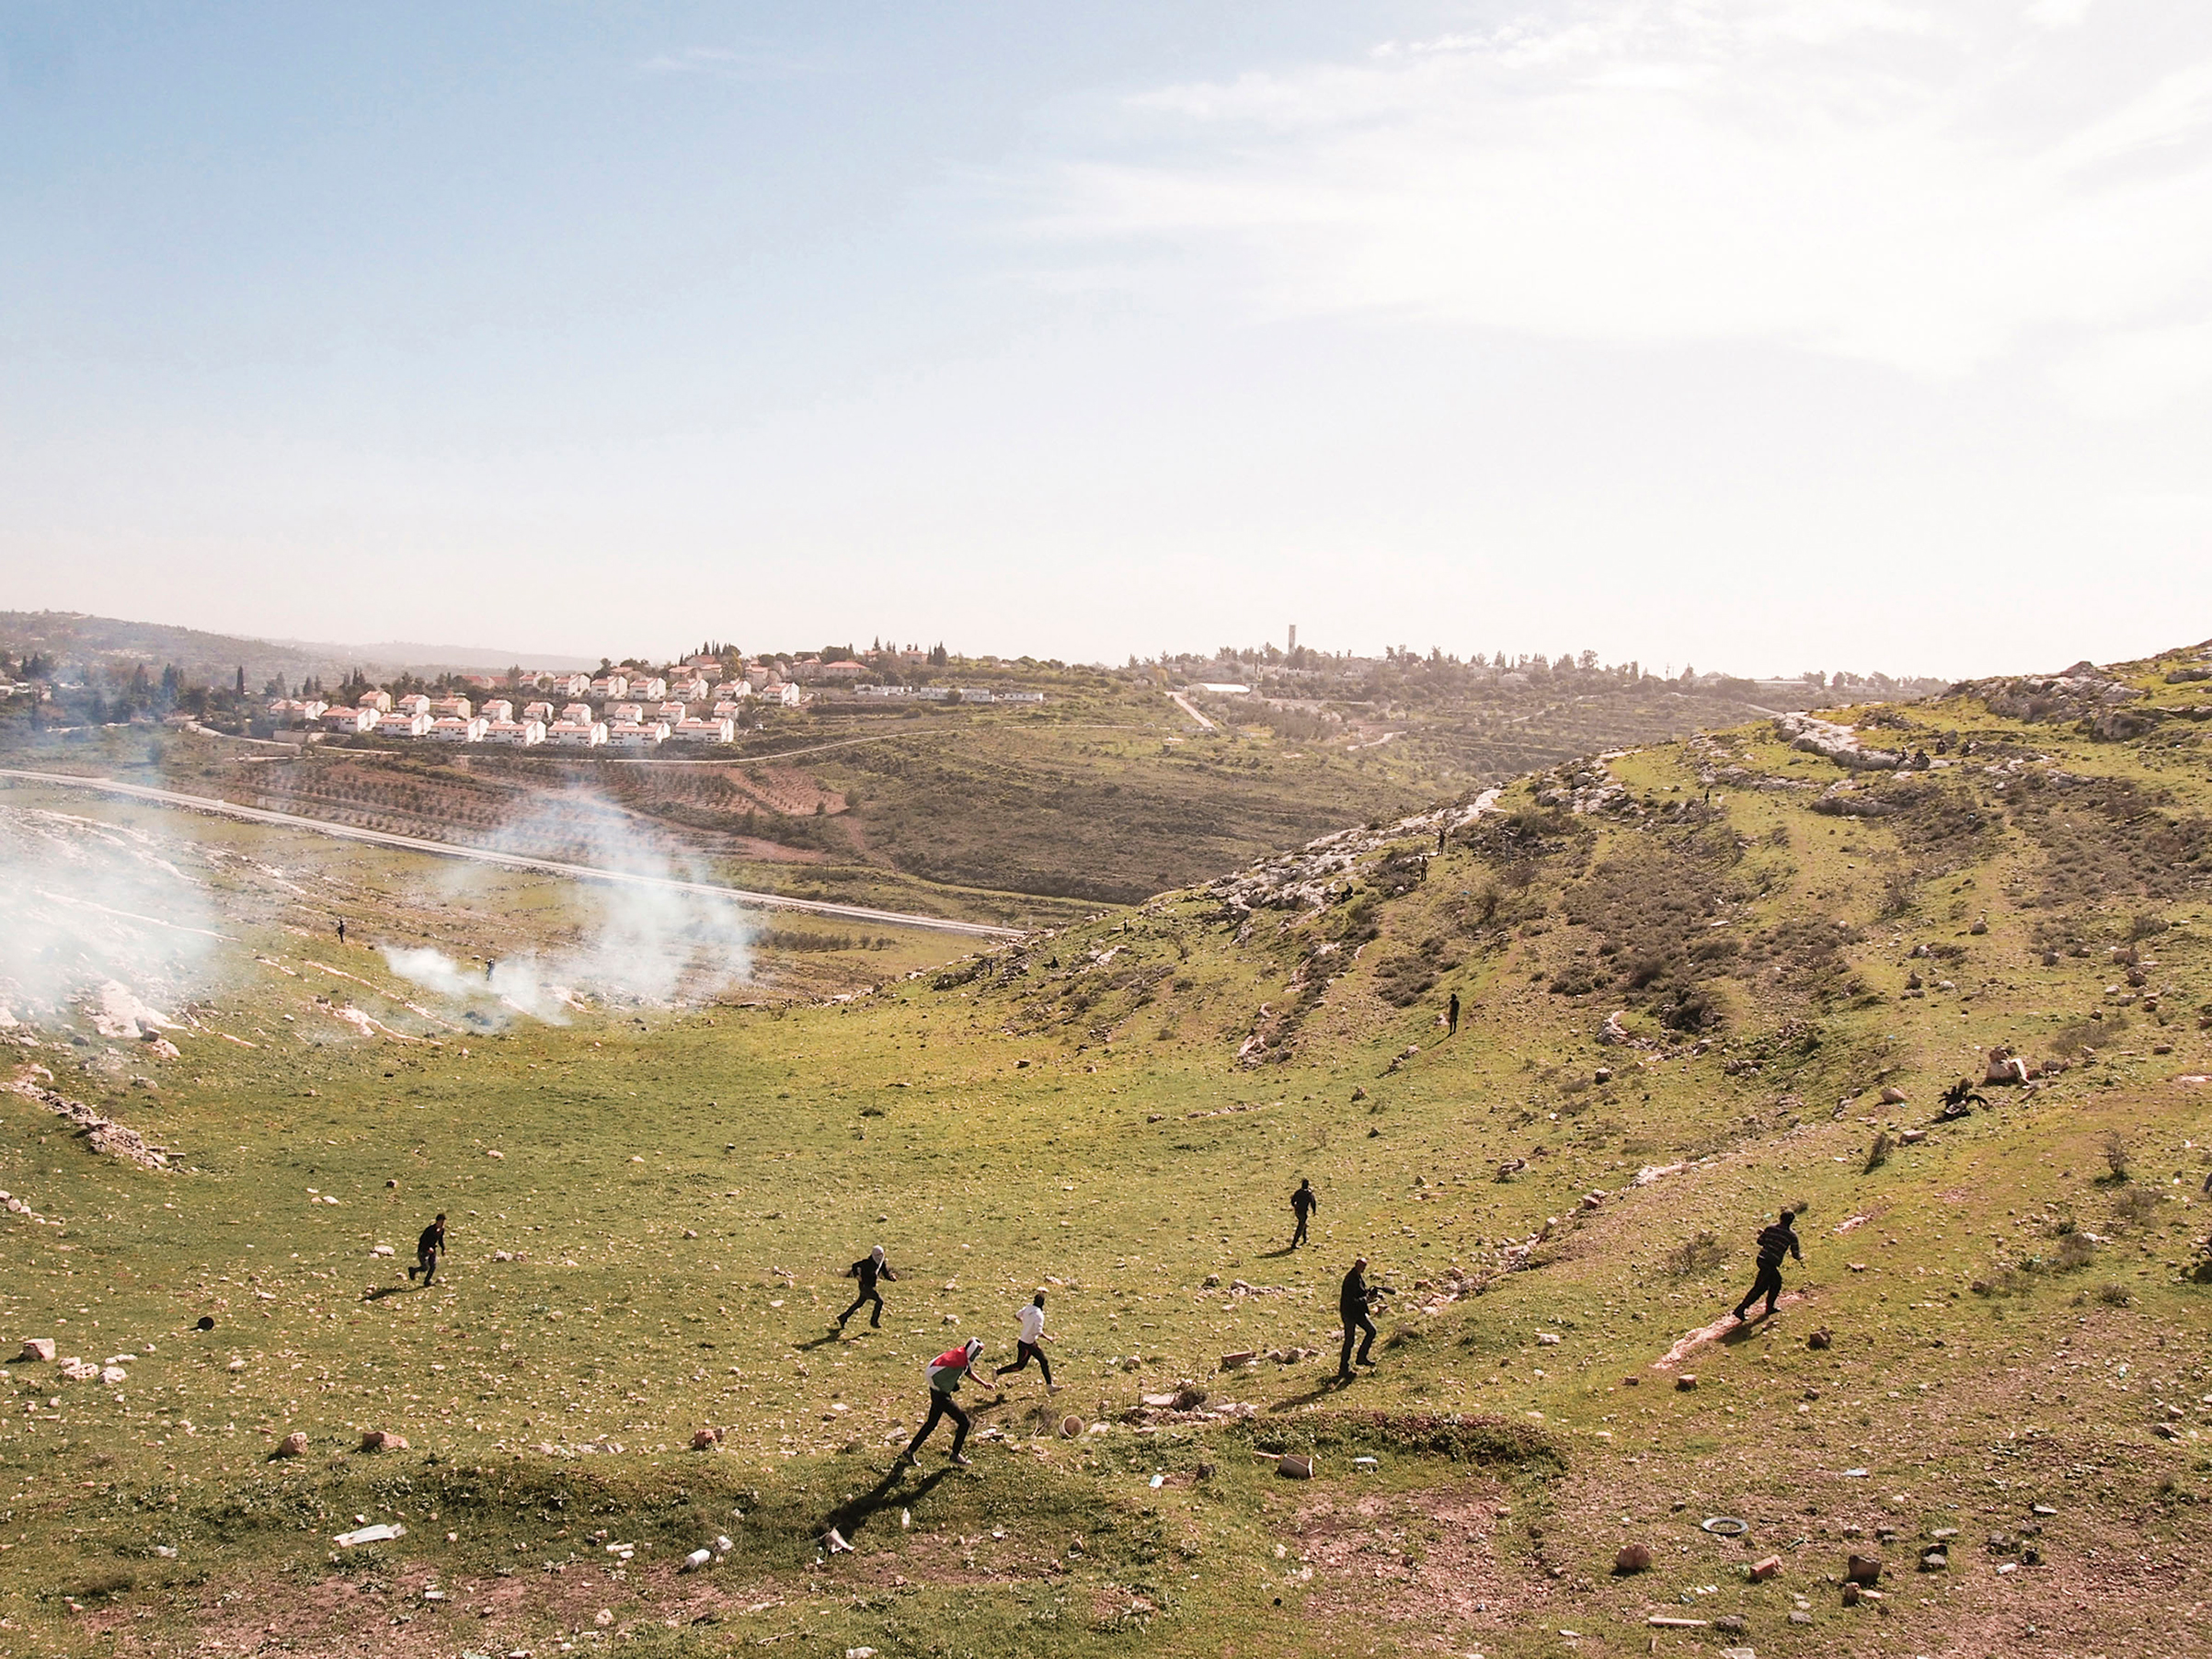 Palestinian protestors run from tear gas fired by Israeli soldiers at a weekly protest against the Israeli occupation. Nabi Saleh, West Bank, 2013.